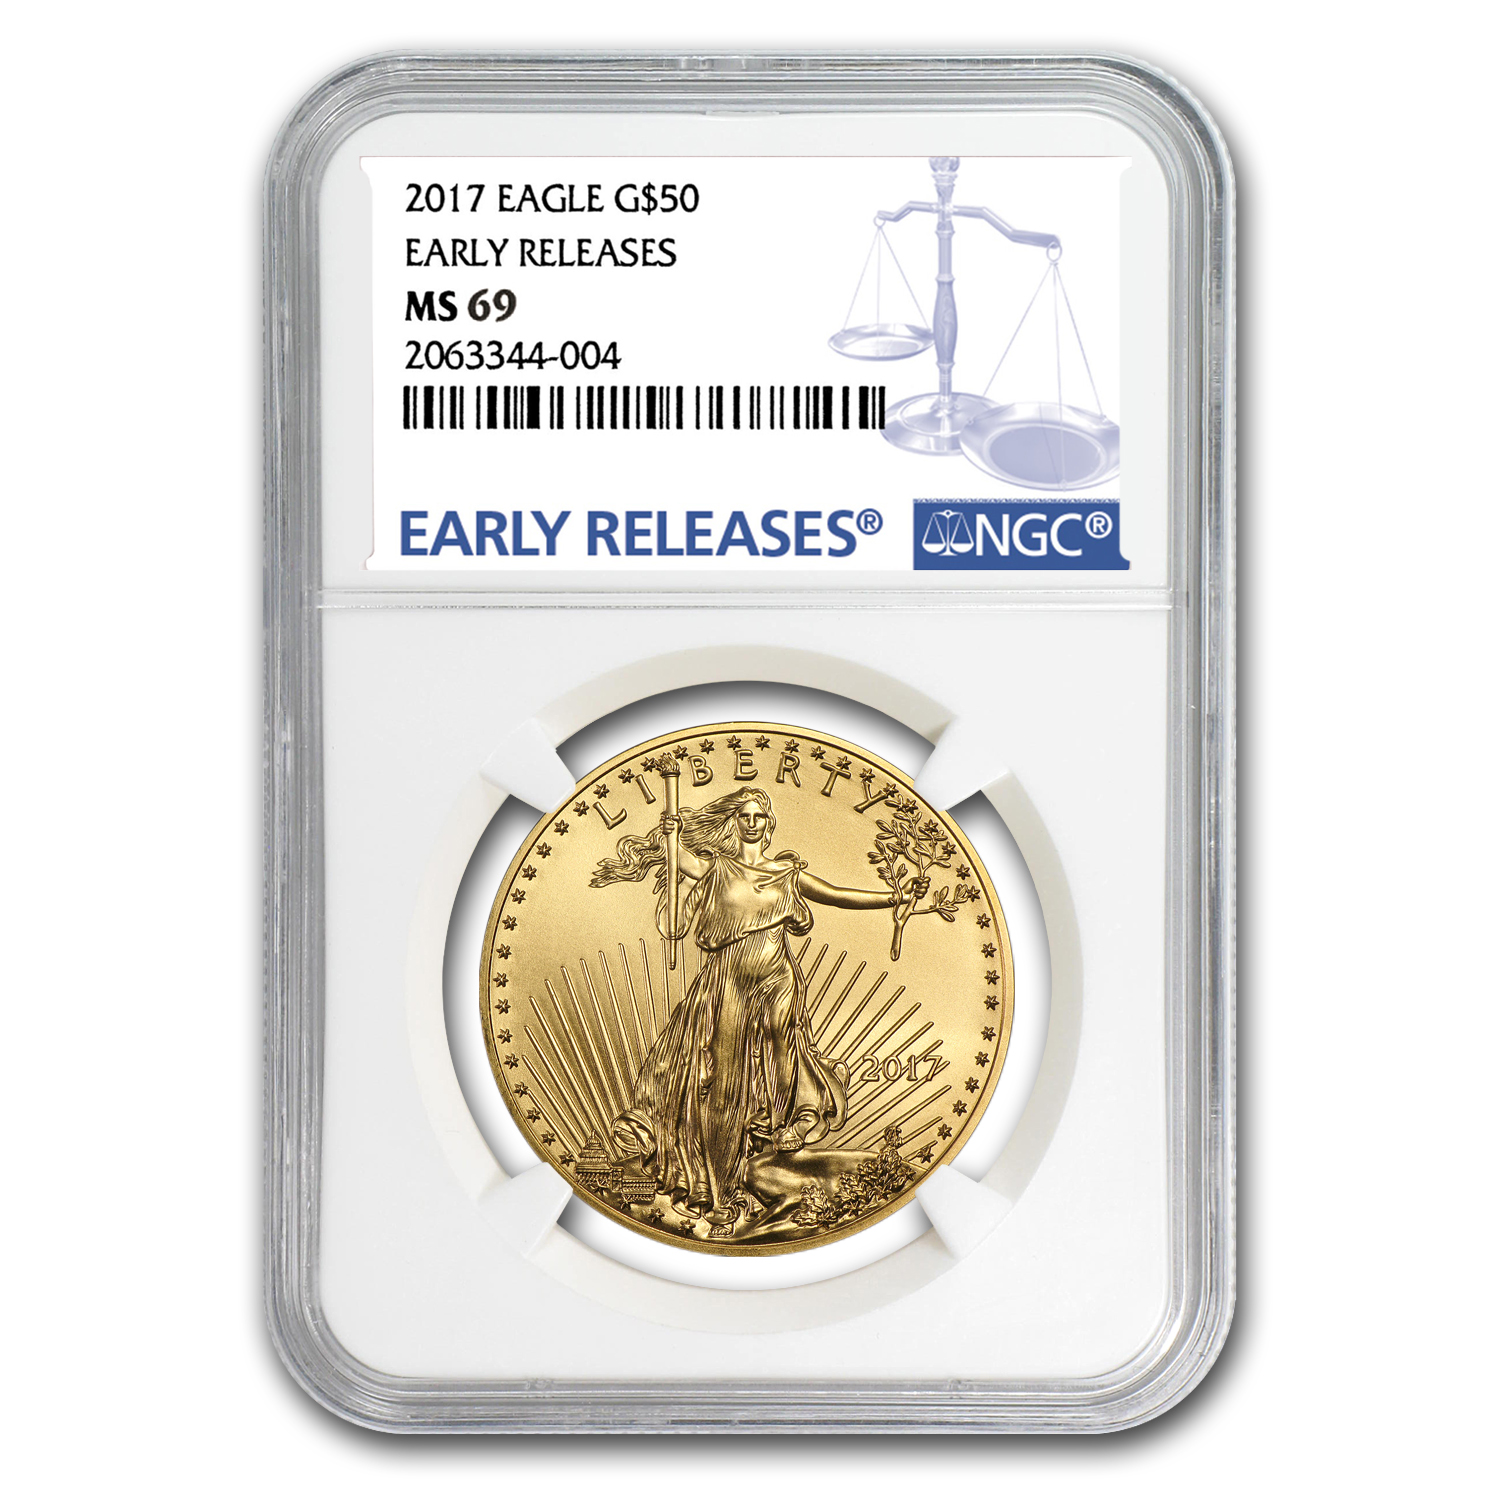 2017 1 oz Gold American Eagle MS-69 NGC (Early Releases)